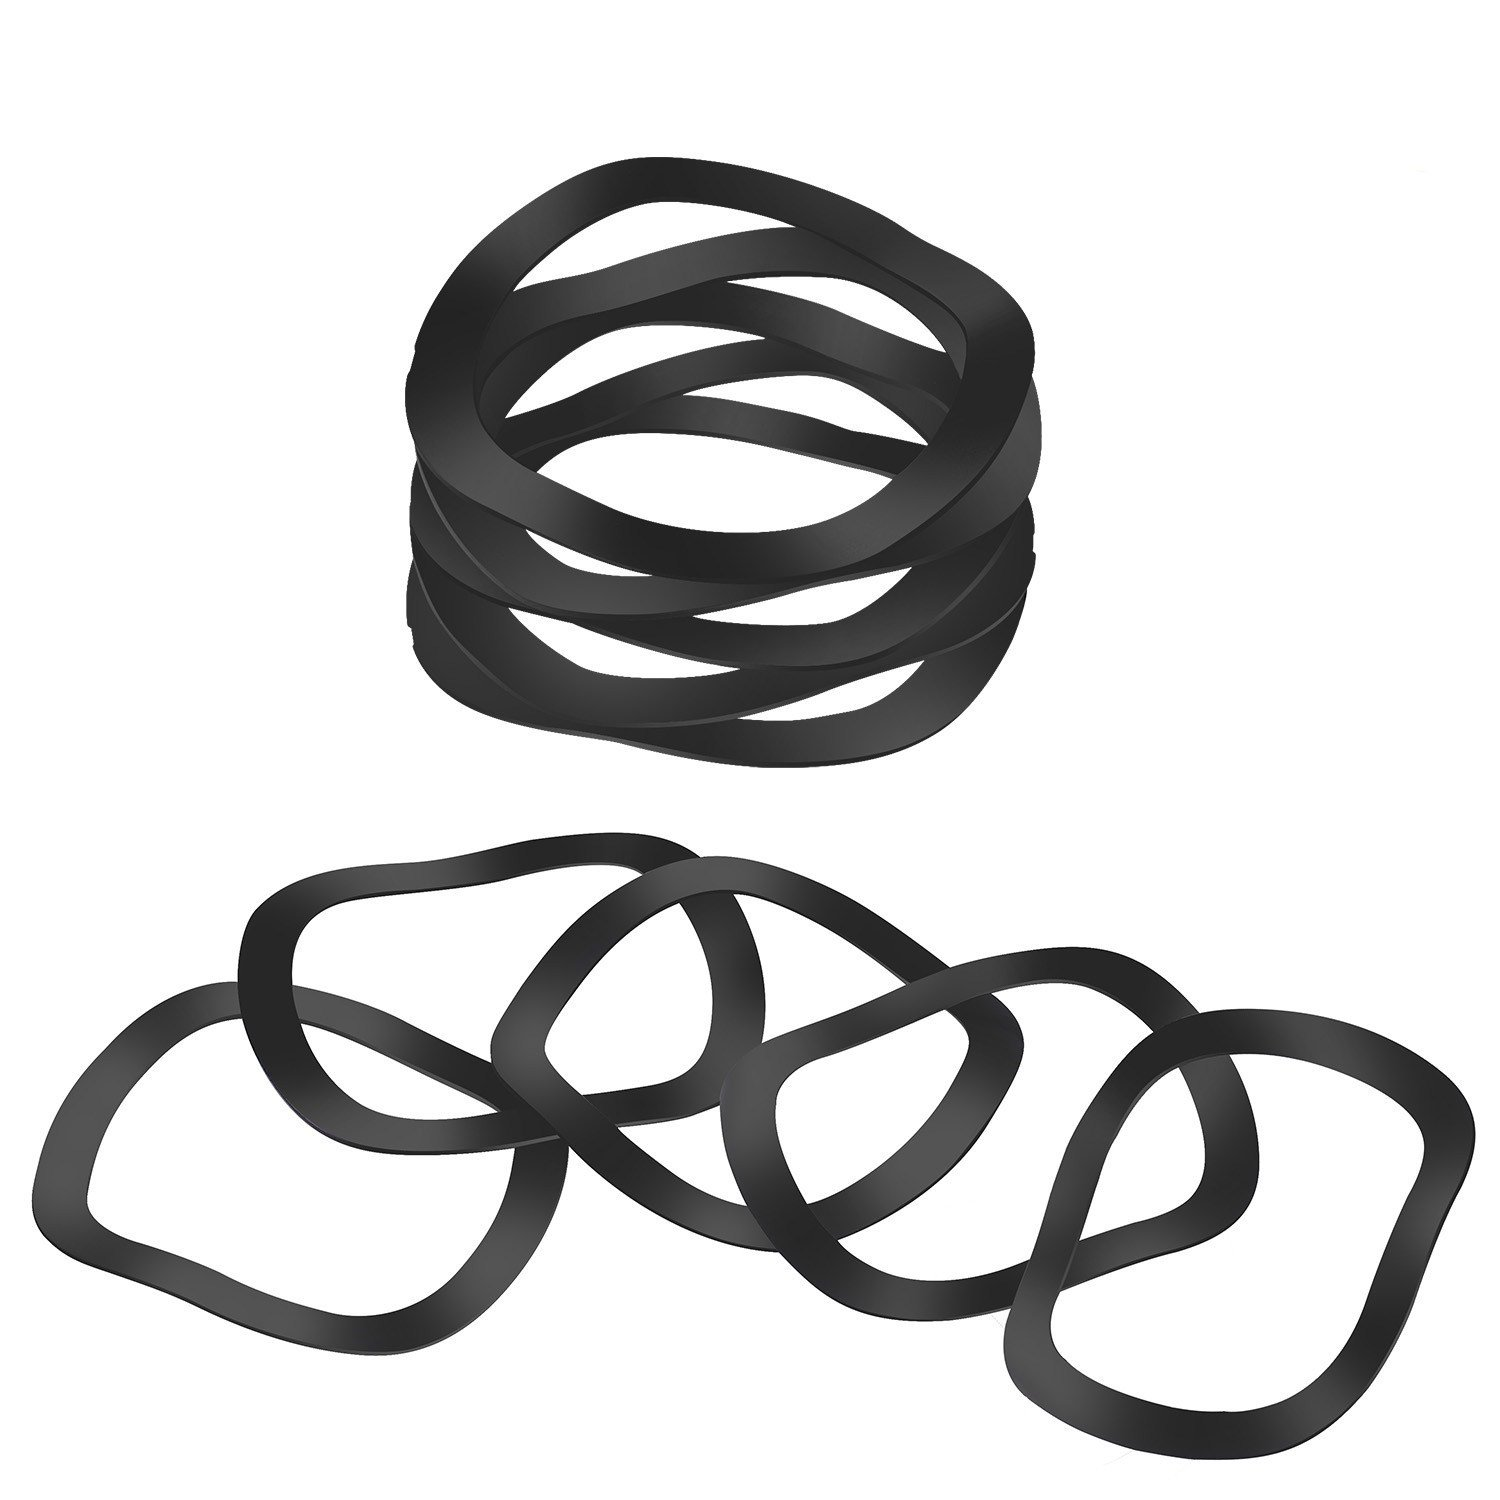 Wave Washers Compression Type Wave Washer Carbon Spring Steel, 3 Waves, Inch, 0.839'' ID, 1.043'' OD, 0.0118'' Thick, 0.118'' Compressed Height Wave Washers (Pack of 10 (M21)